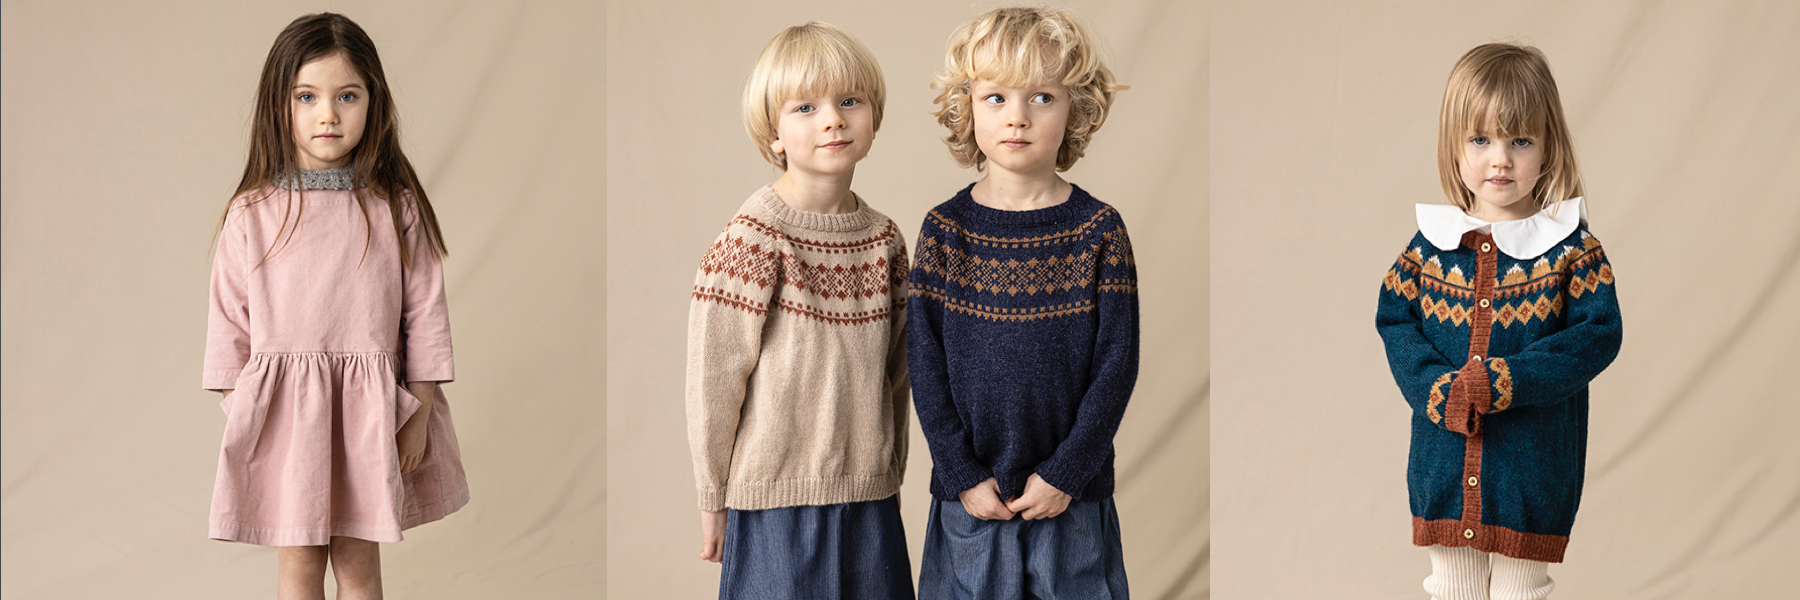 slow fashion, As We Grow, vêtements enfant en tissu equitable et durable